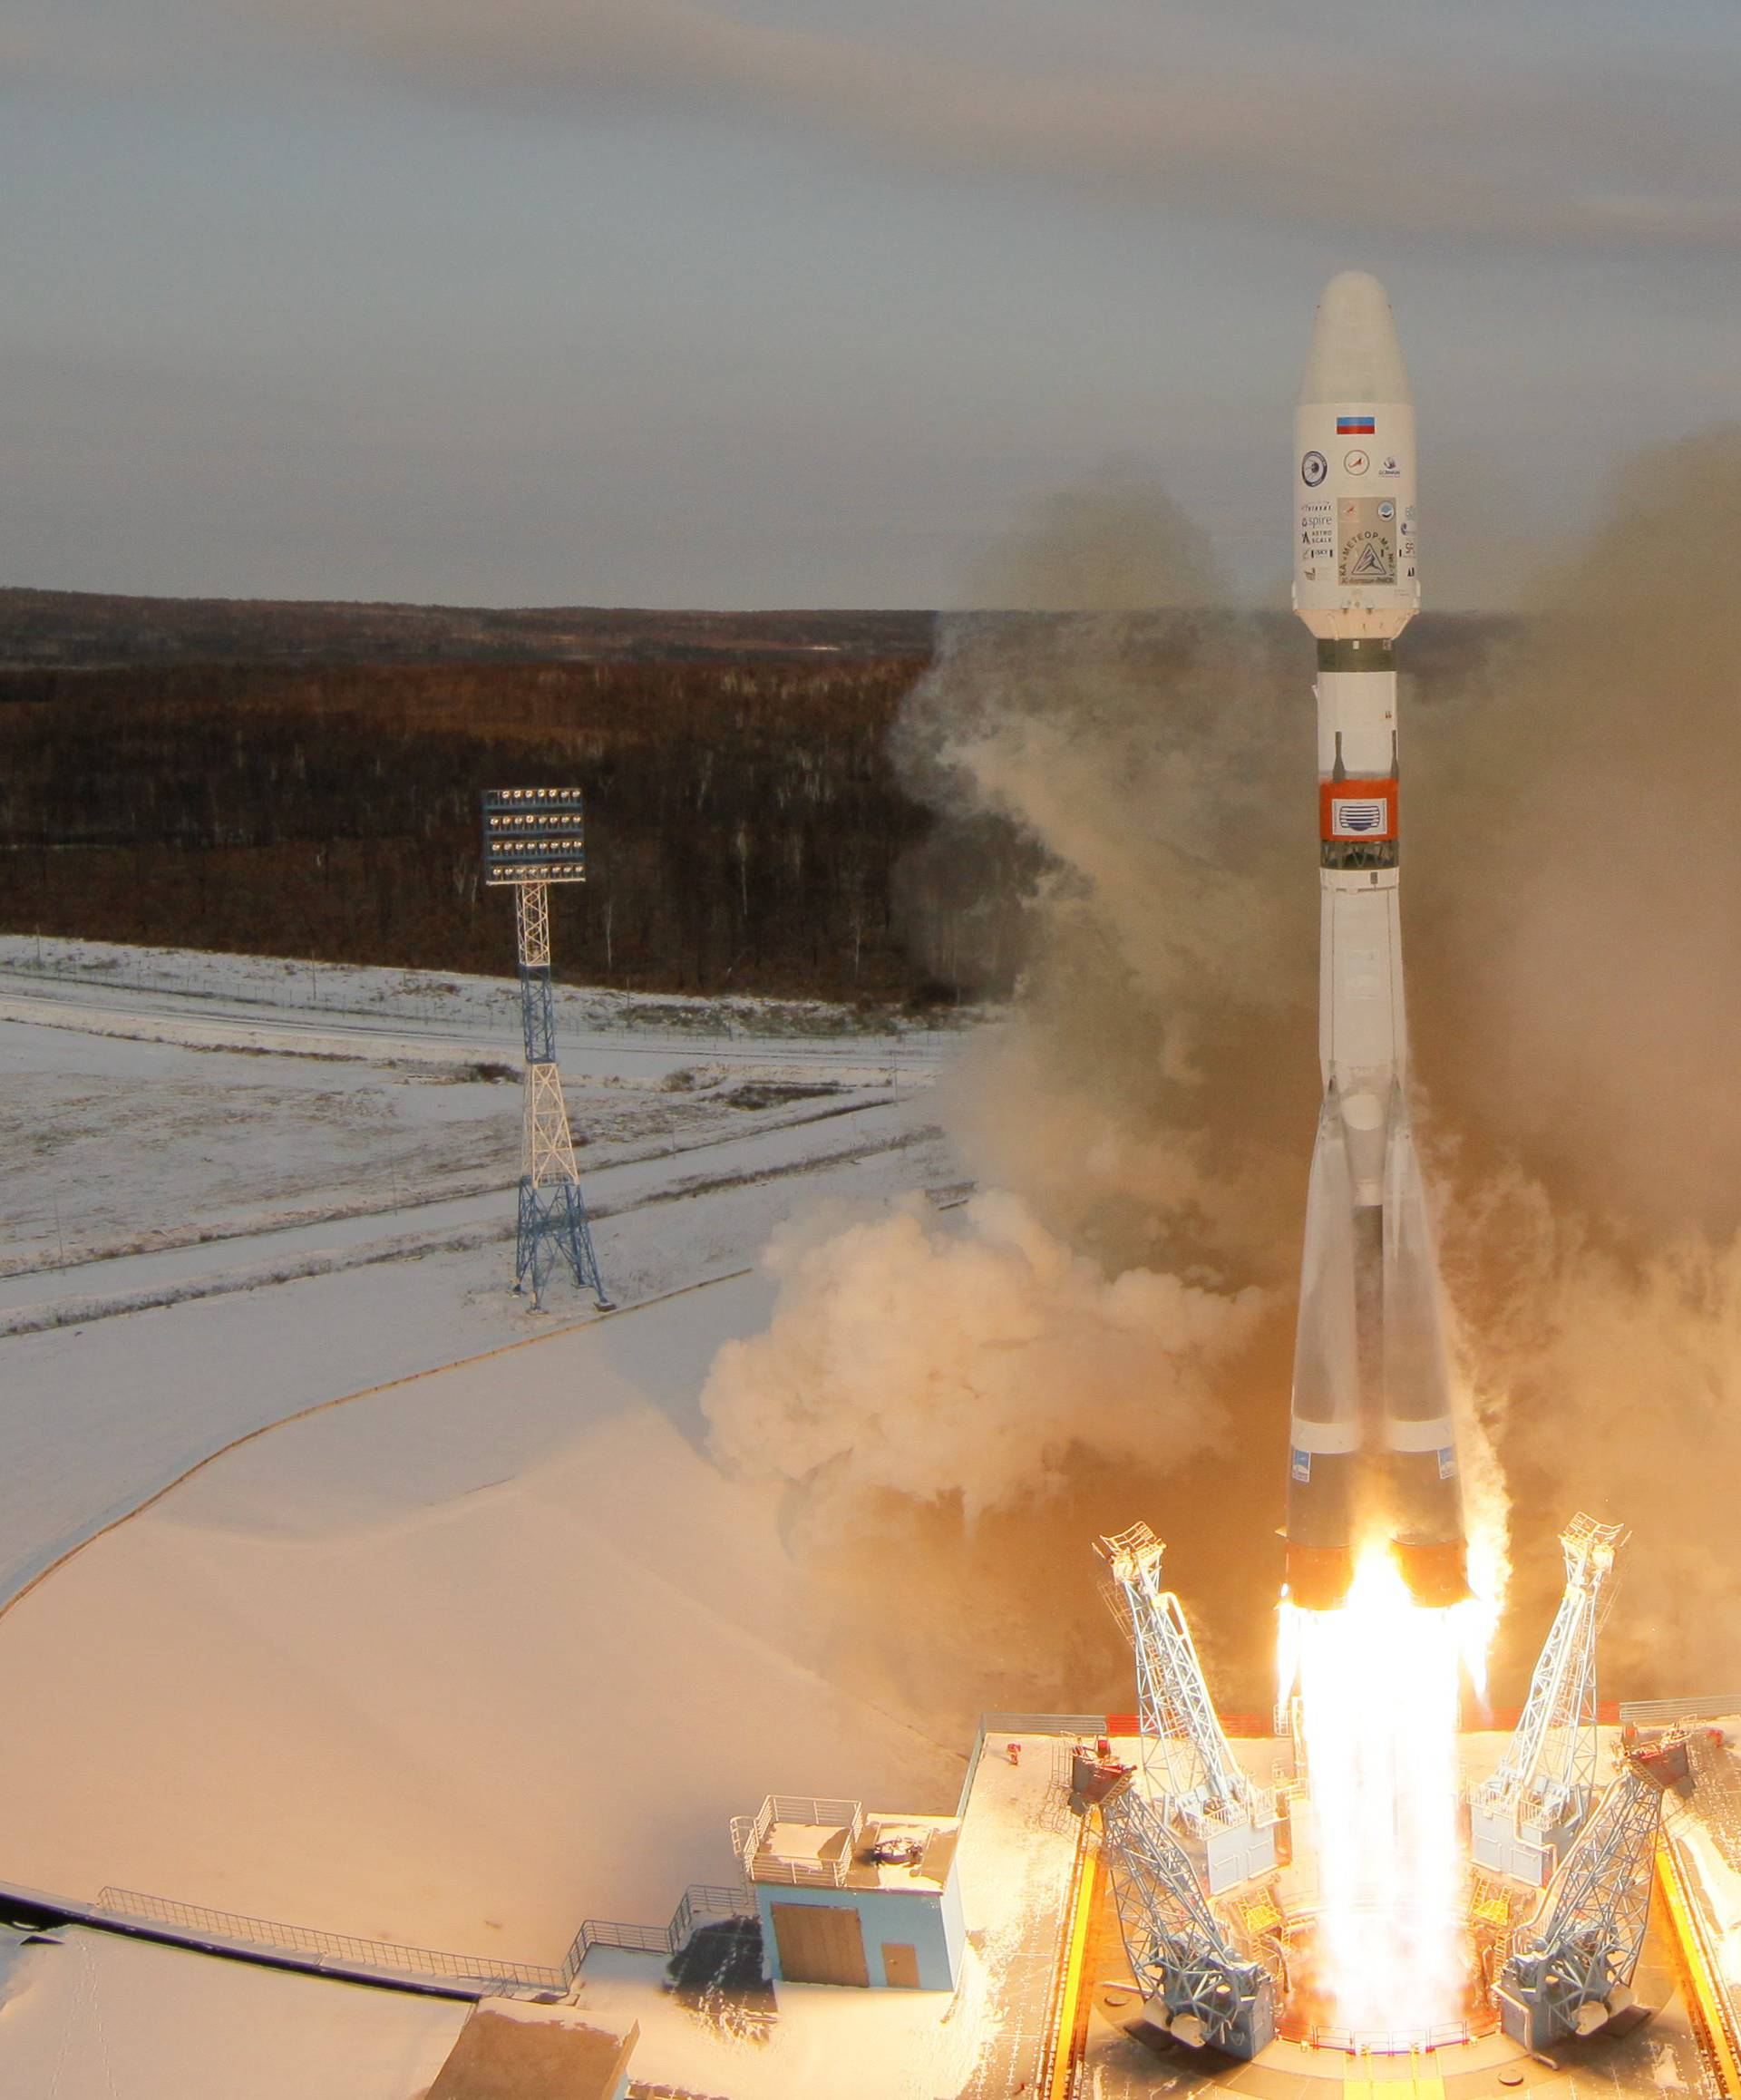 The Souyz-2 spacecraft with Meteor-M satellite and 18 additional small satellites launches from Russia's new Vostochny cosmodrome, near the town of Tsiolkovsky in Amur region